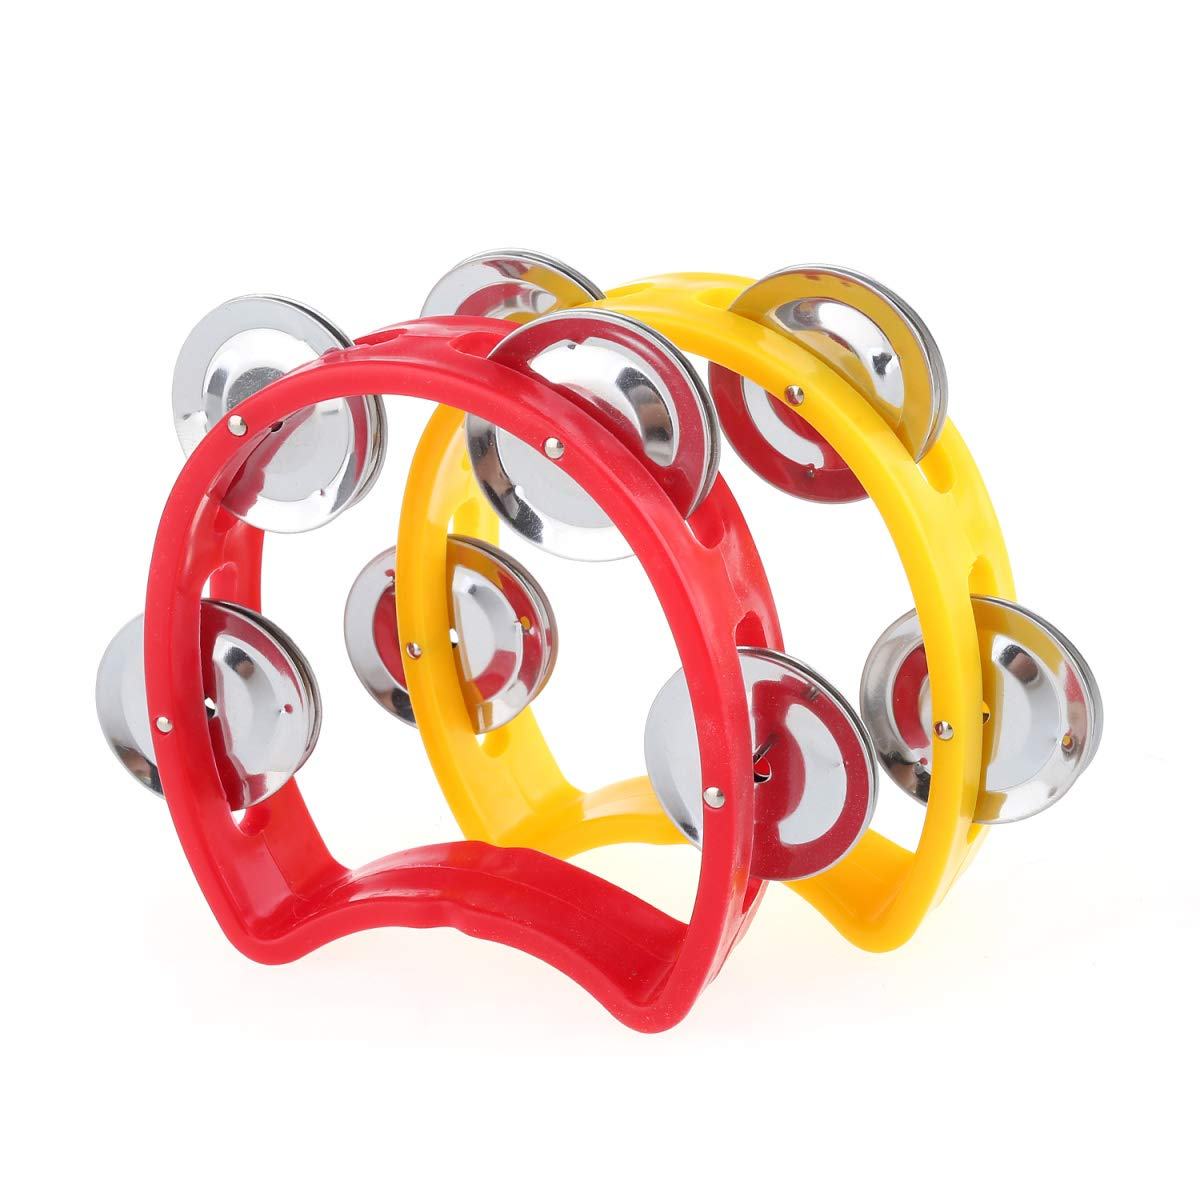 Musiclily Plastic Handheld Tambourine Percussion Jingles Musical Instrument for Kids and Adults, Red/Yellow(Pack of 20) by Musiclily